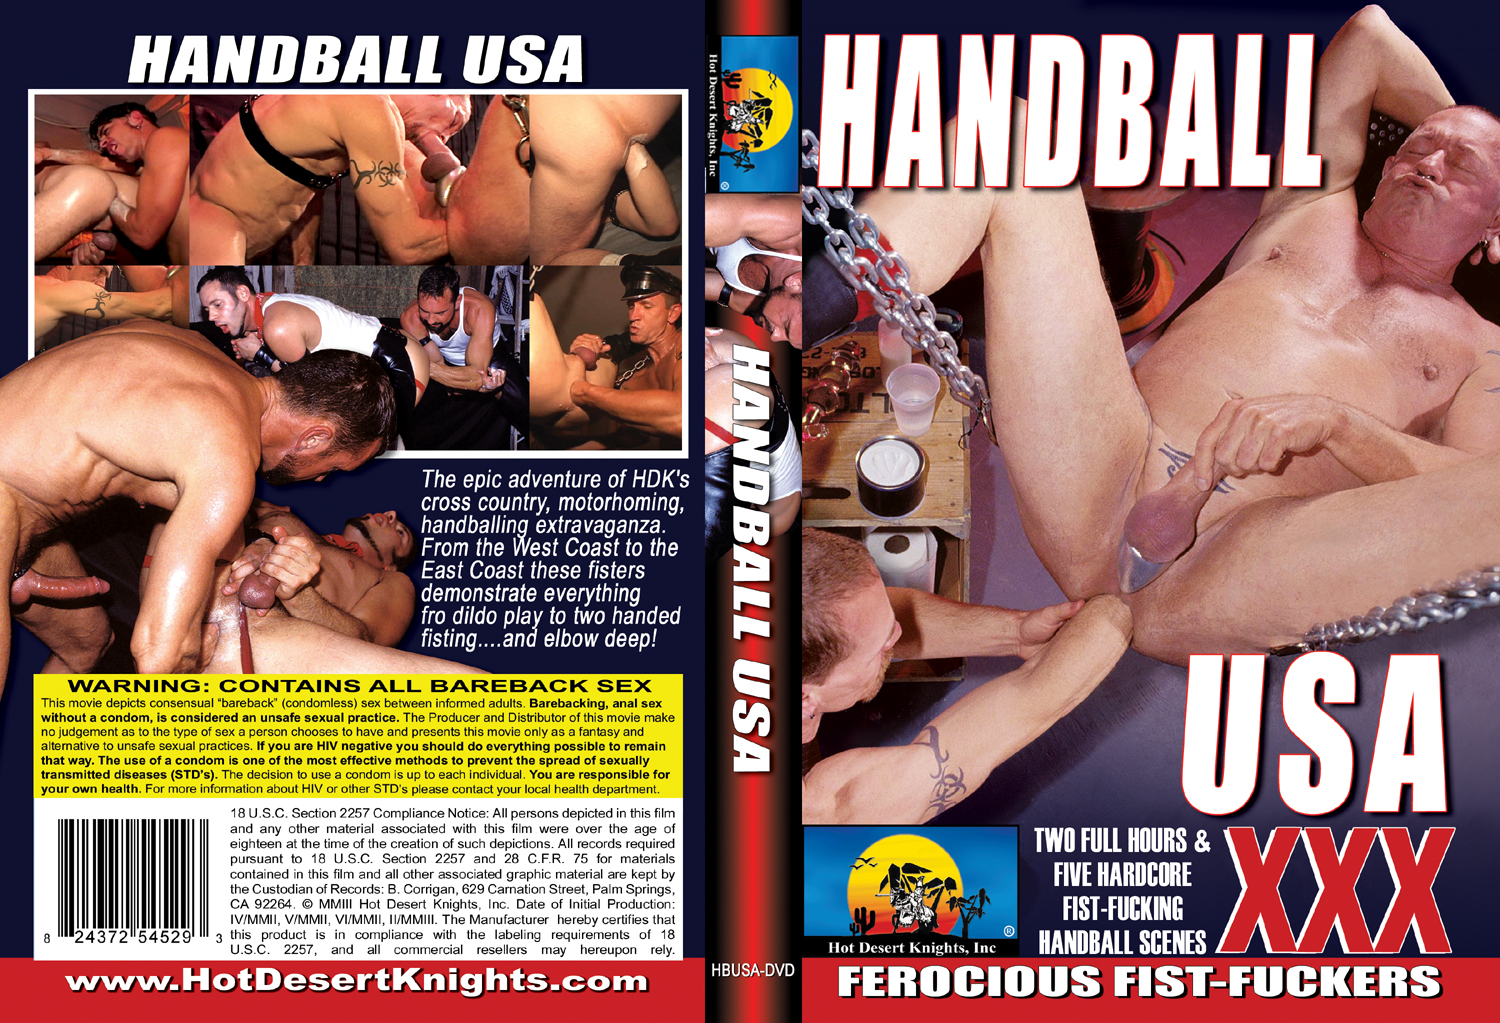 HDK Movie: HANDBALL USA